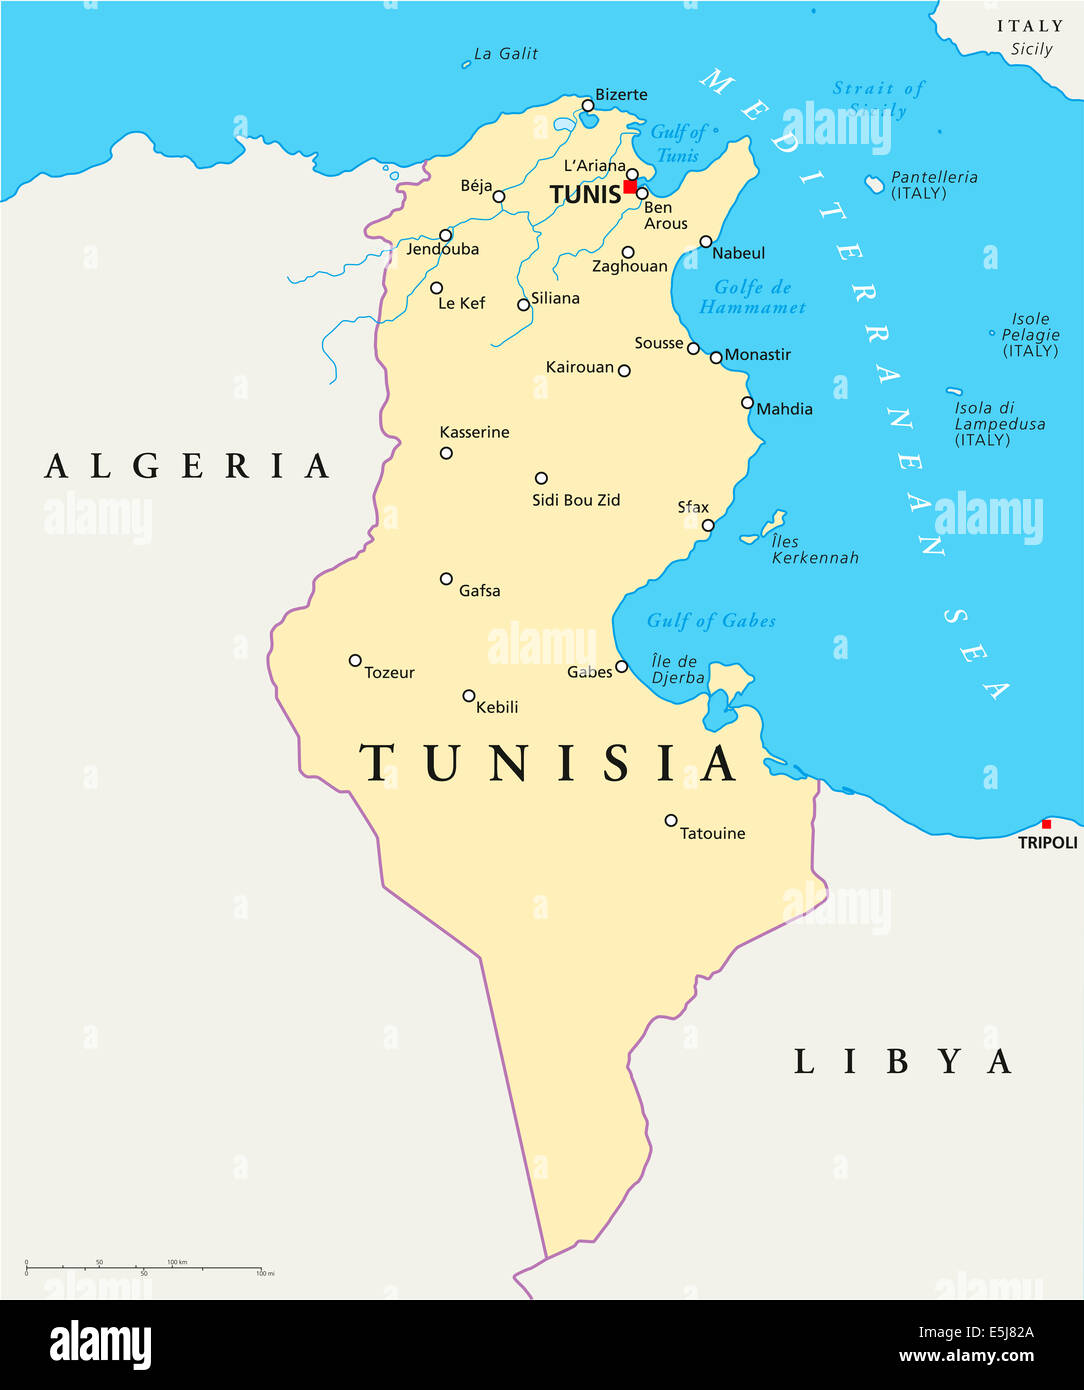 Tunisia Political Map With Capital Tunis National Borders Most